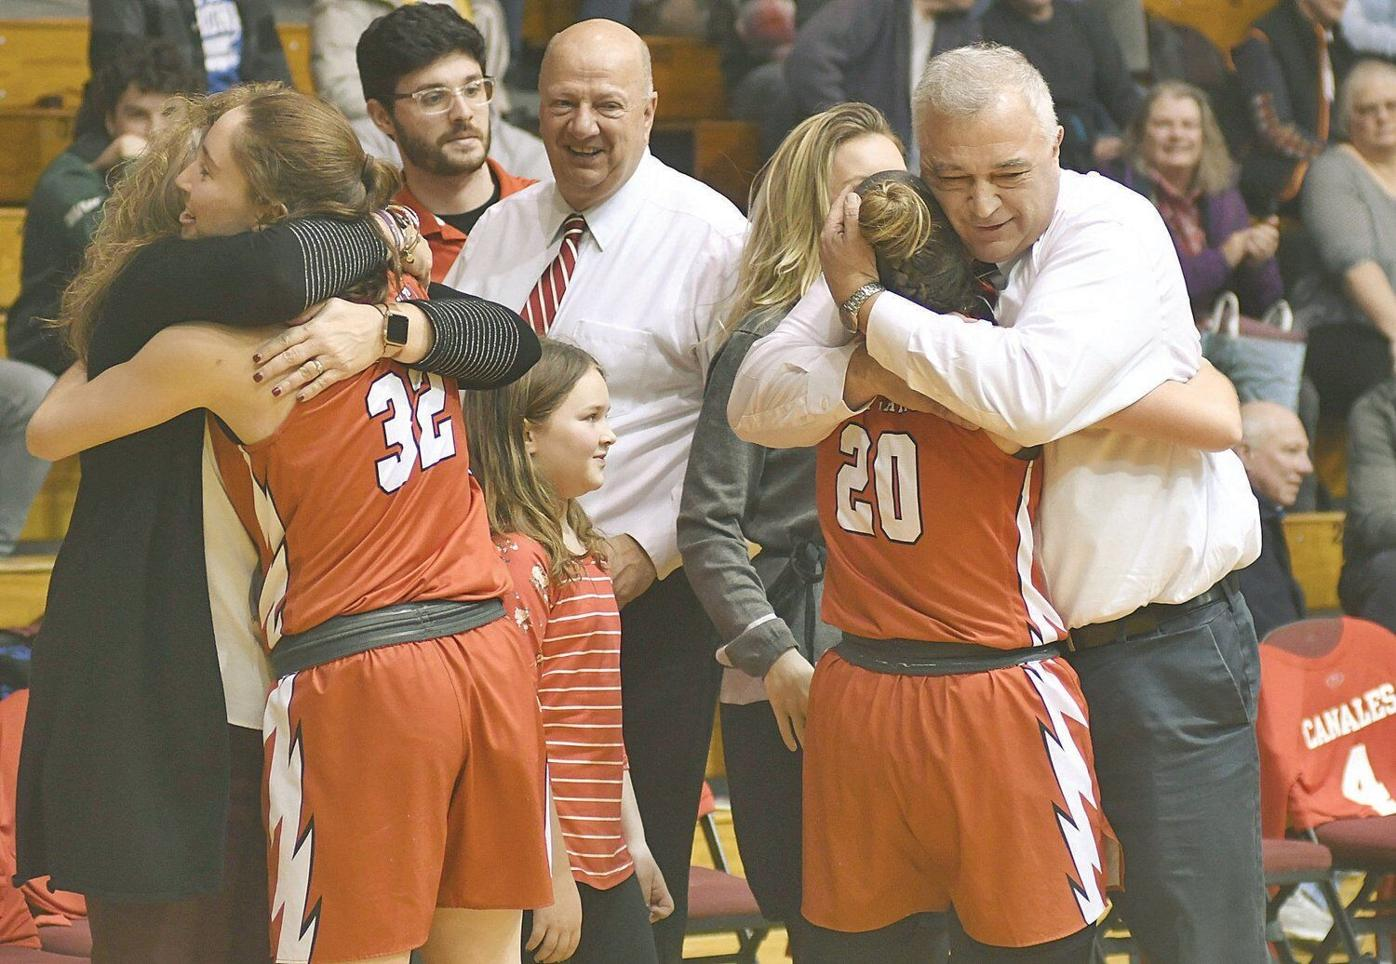 Ron Wojcik told by district he will not return as girls basketball coach at Hoosac Valley